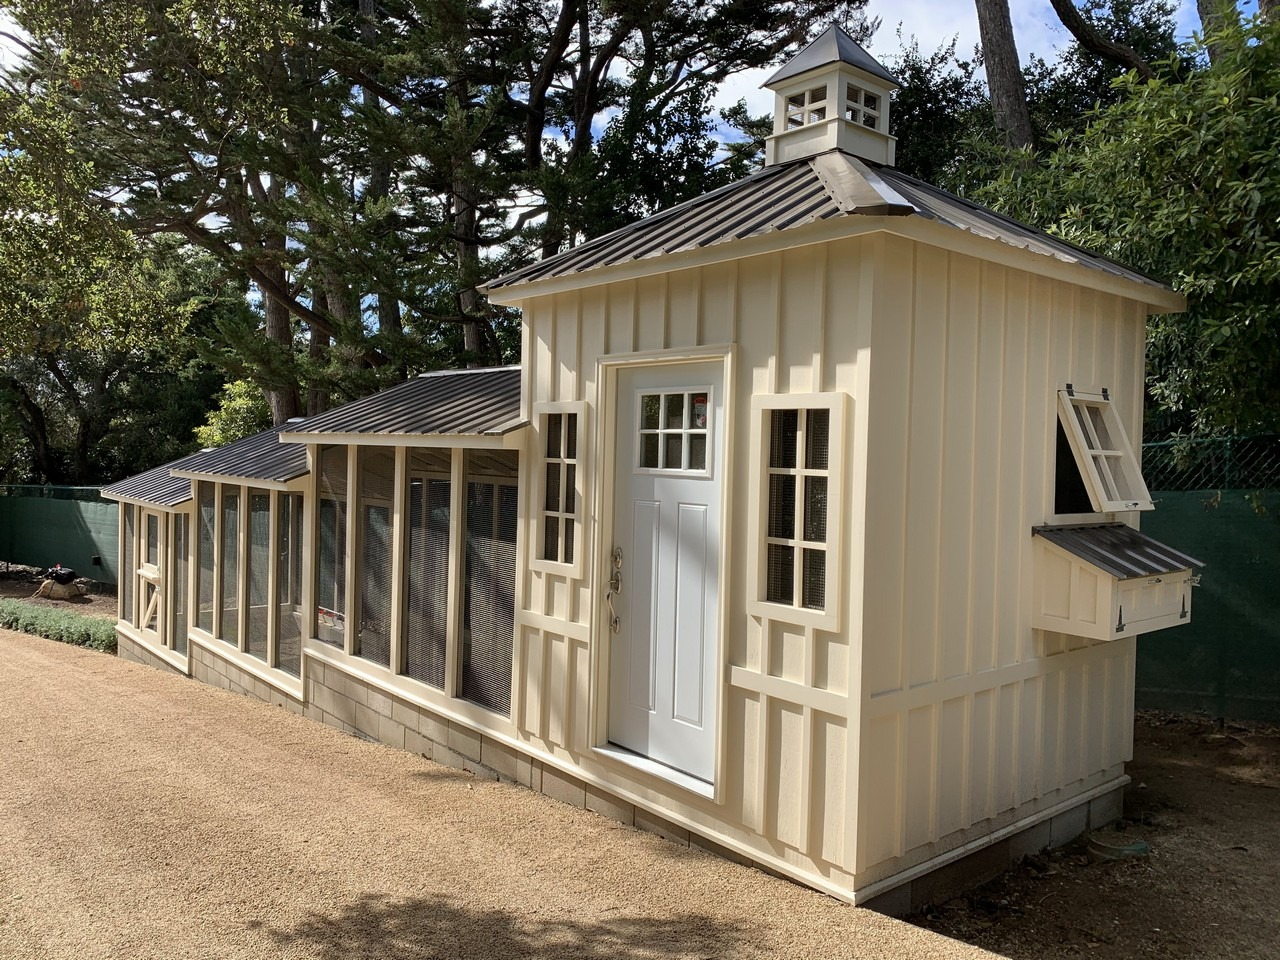 Shed-henhouse combo of a custom Craftsman Coop in Santa Barbara, CA